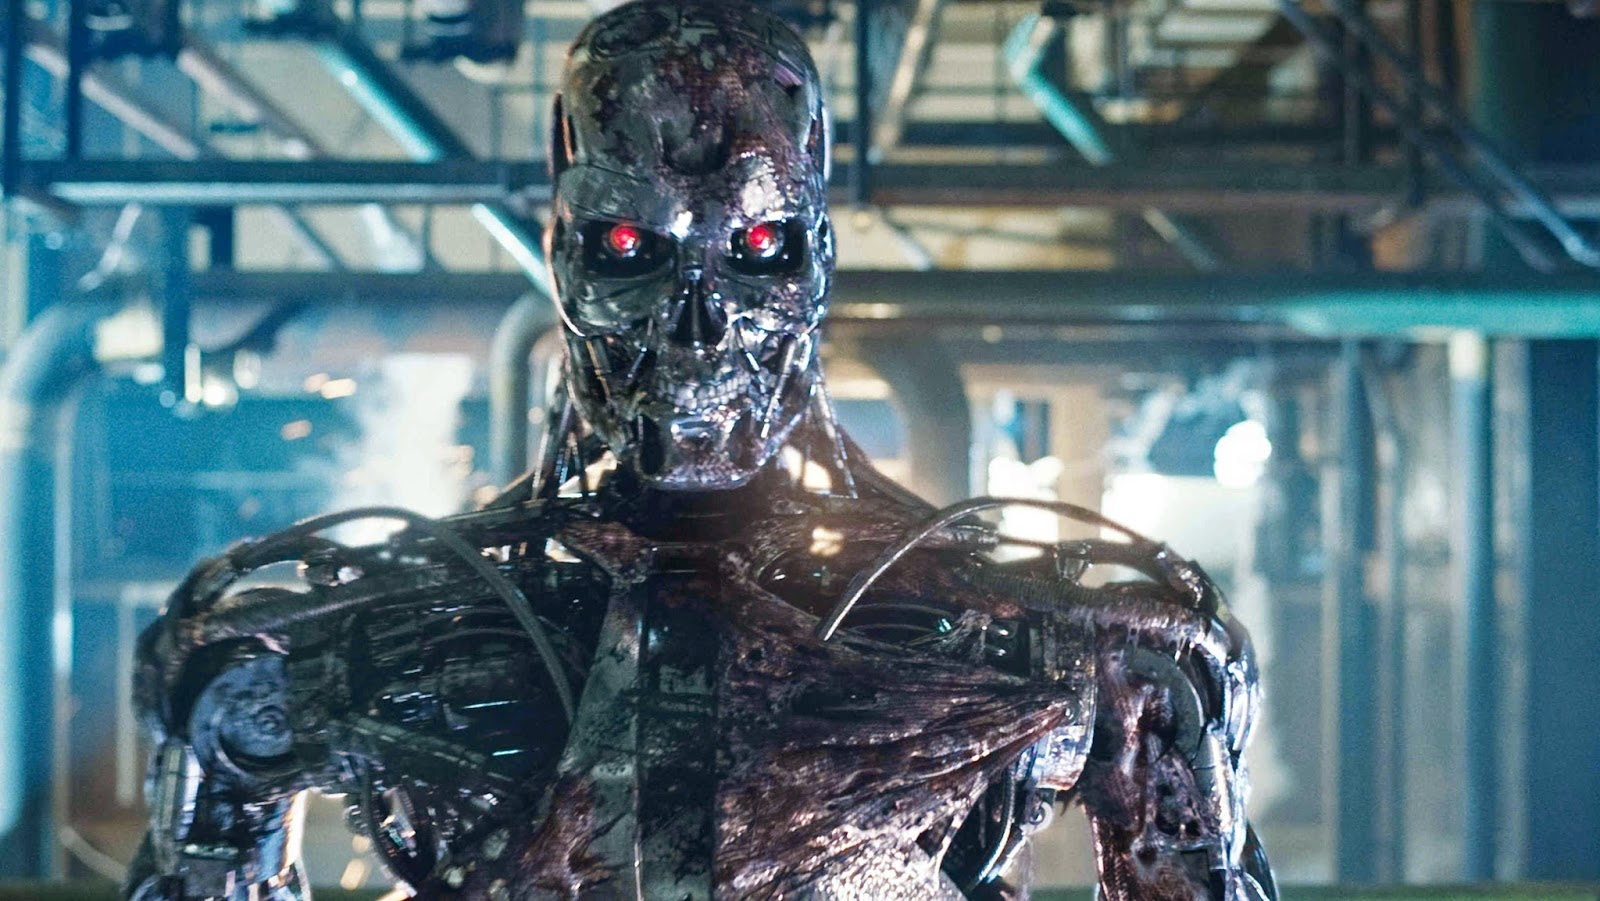 Automation is the future - robots will terminate your jobs ...